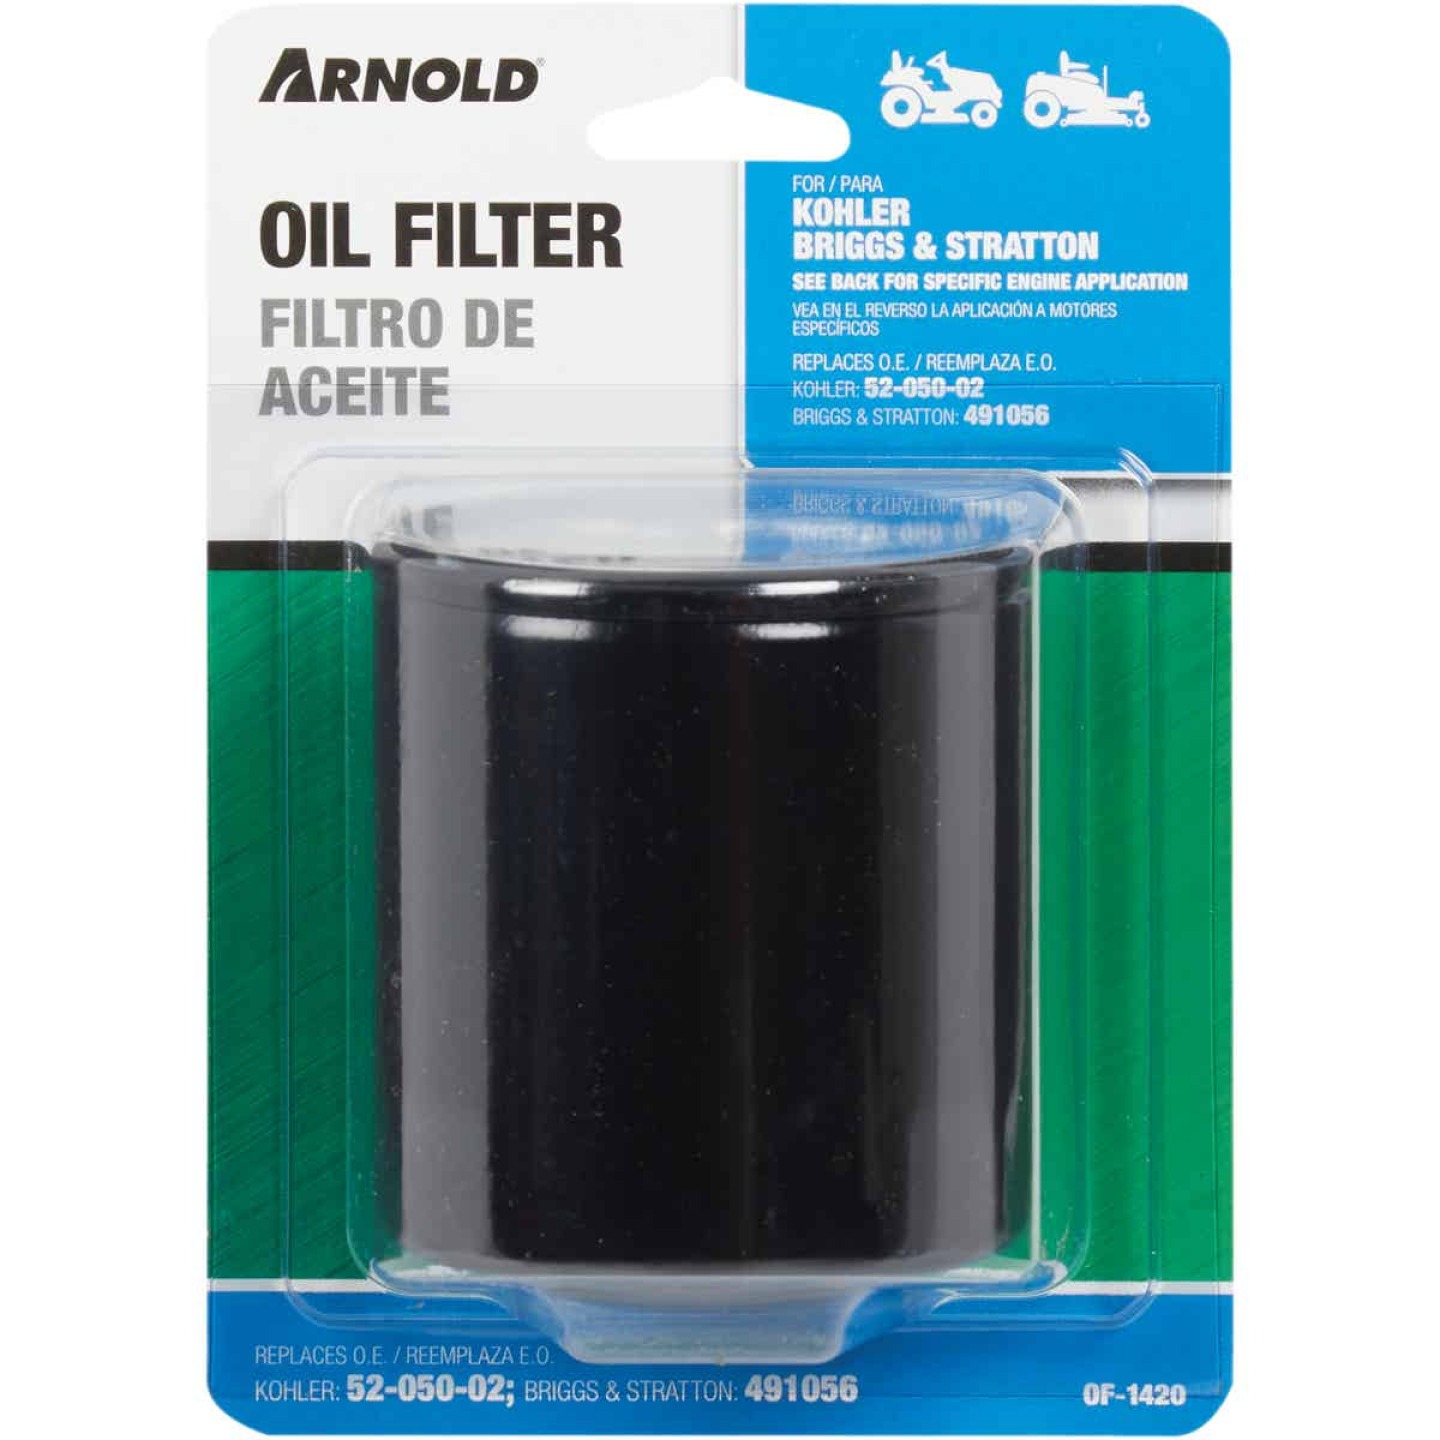 Arnold Oil Filter for Briggs & Stratton and Kohler Engines Image 2